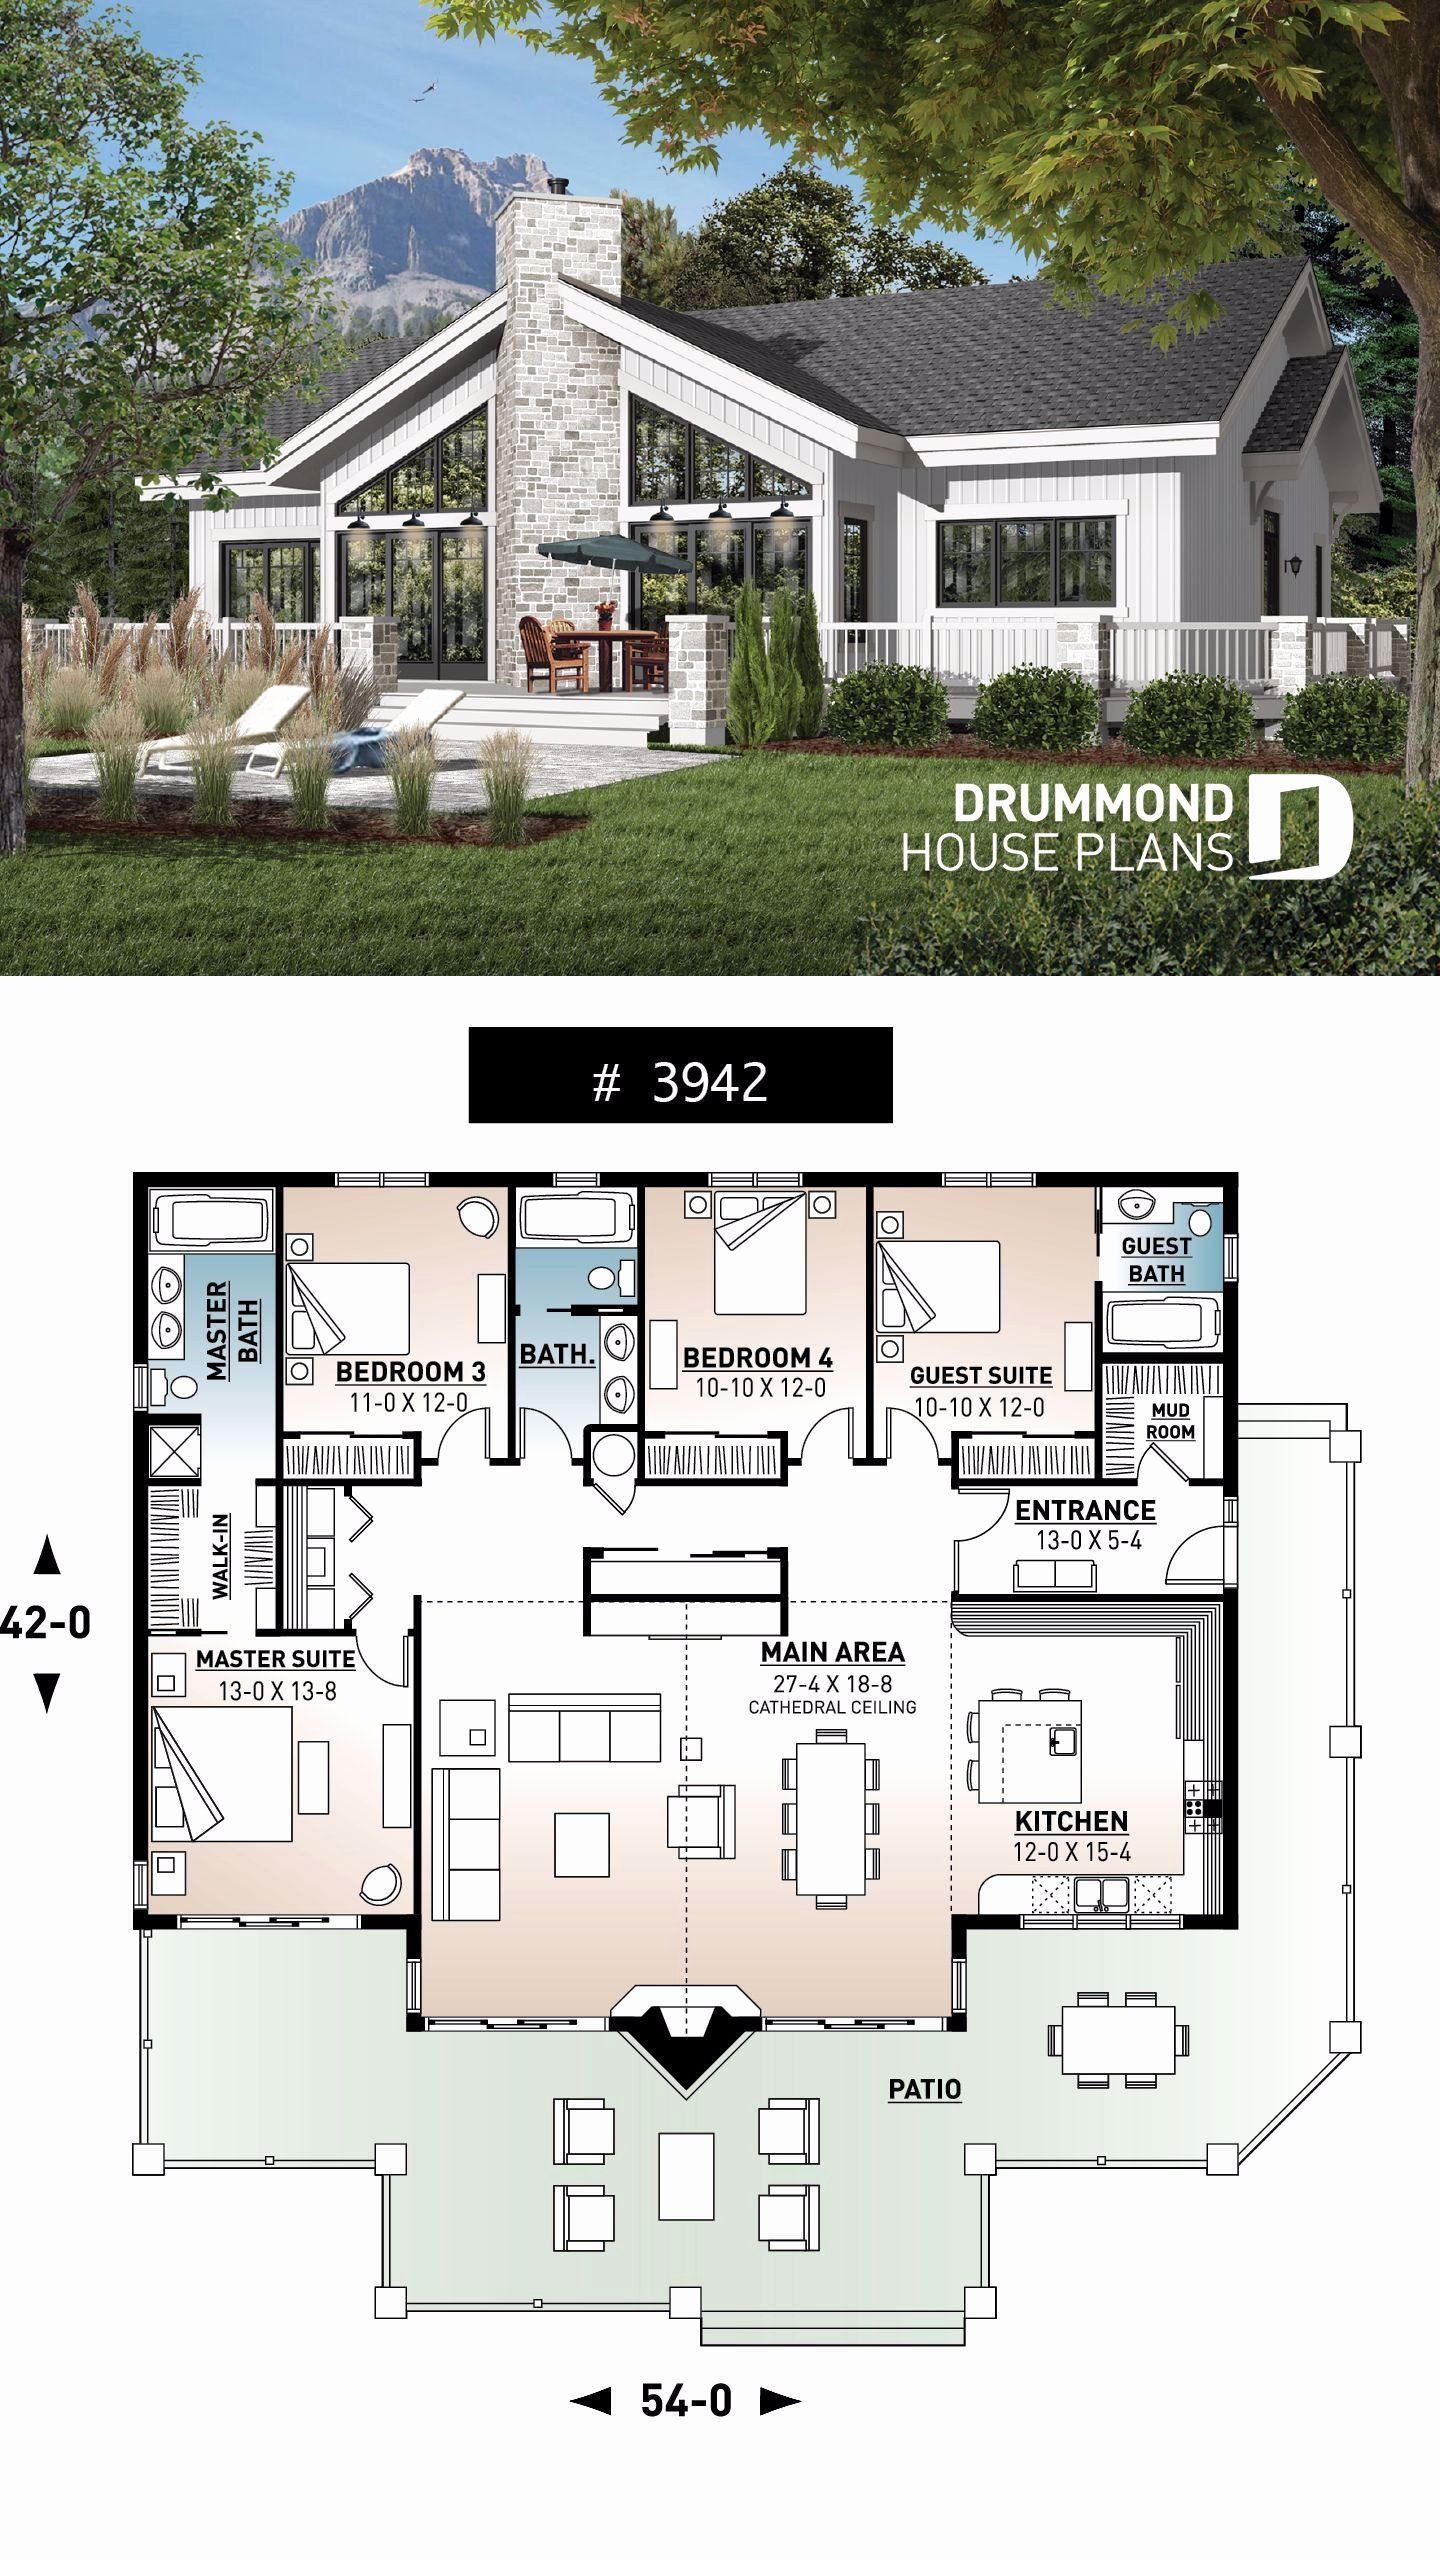 2 Master Suite House Plans Lovely Schlafzimmern Seeuferhausplan Von Lakefront House Plan Of Caitlinco Sims House Plans House Plans Farmhouse Lake House Plans